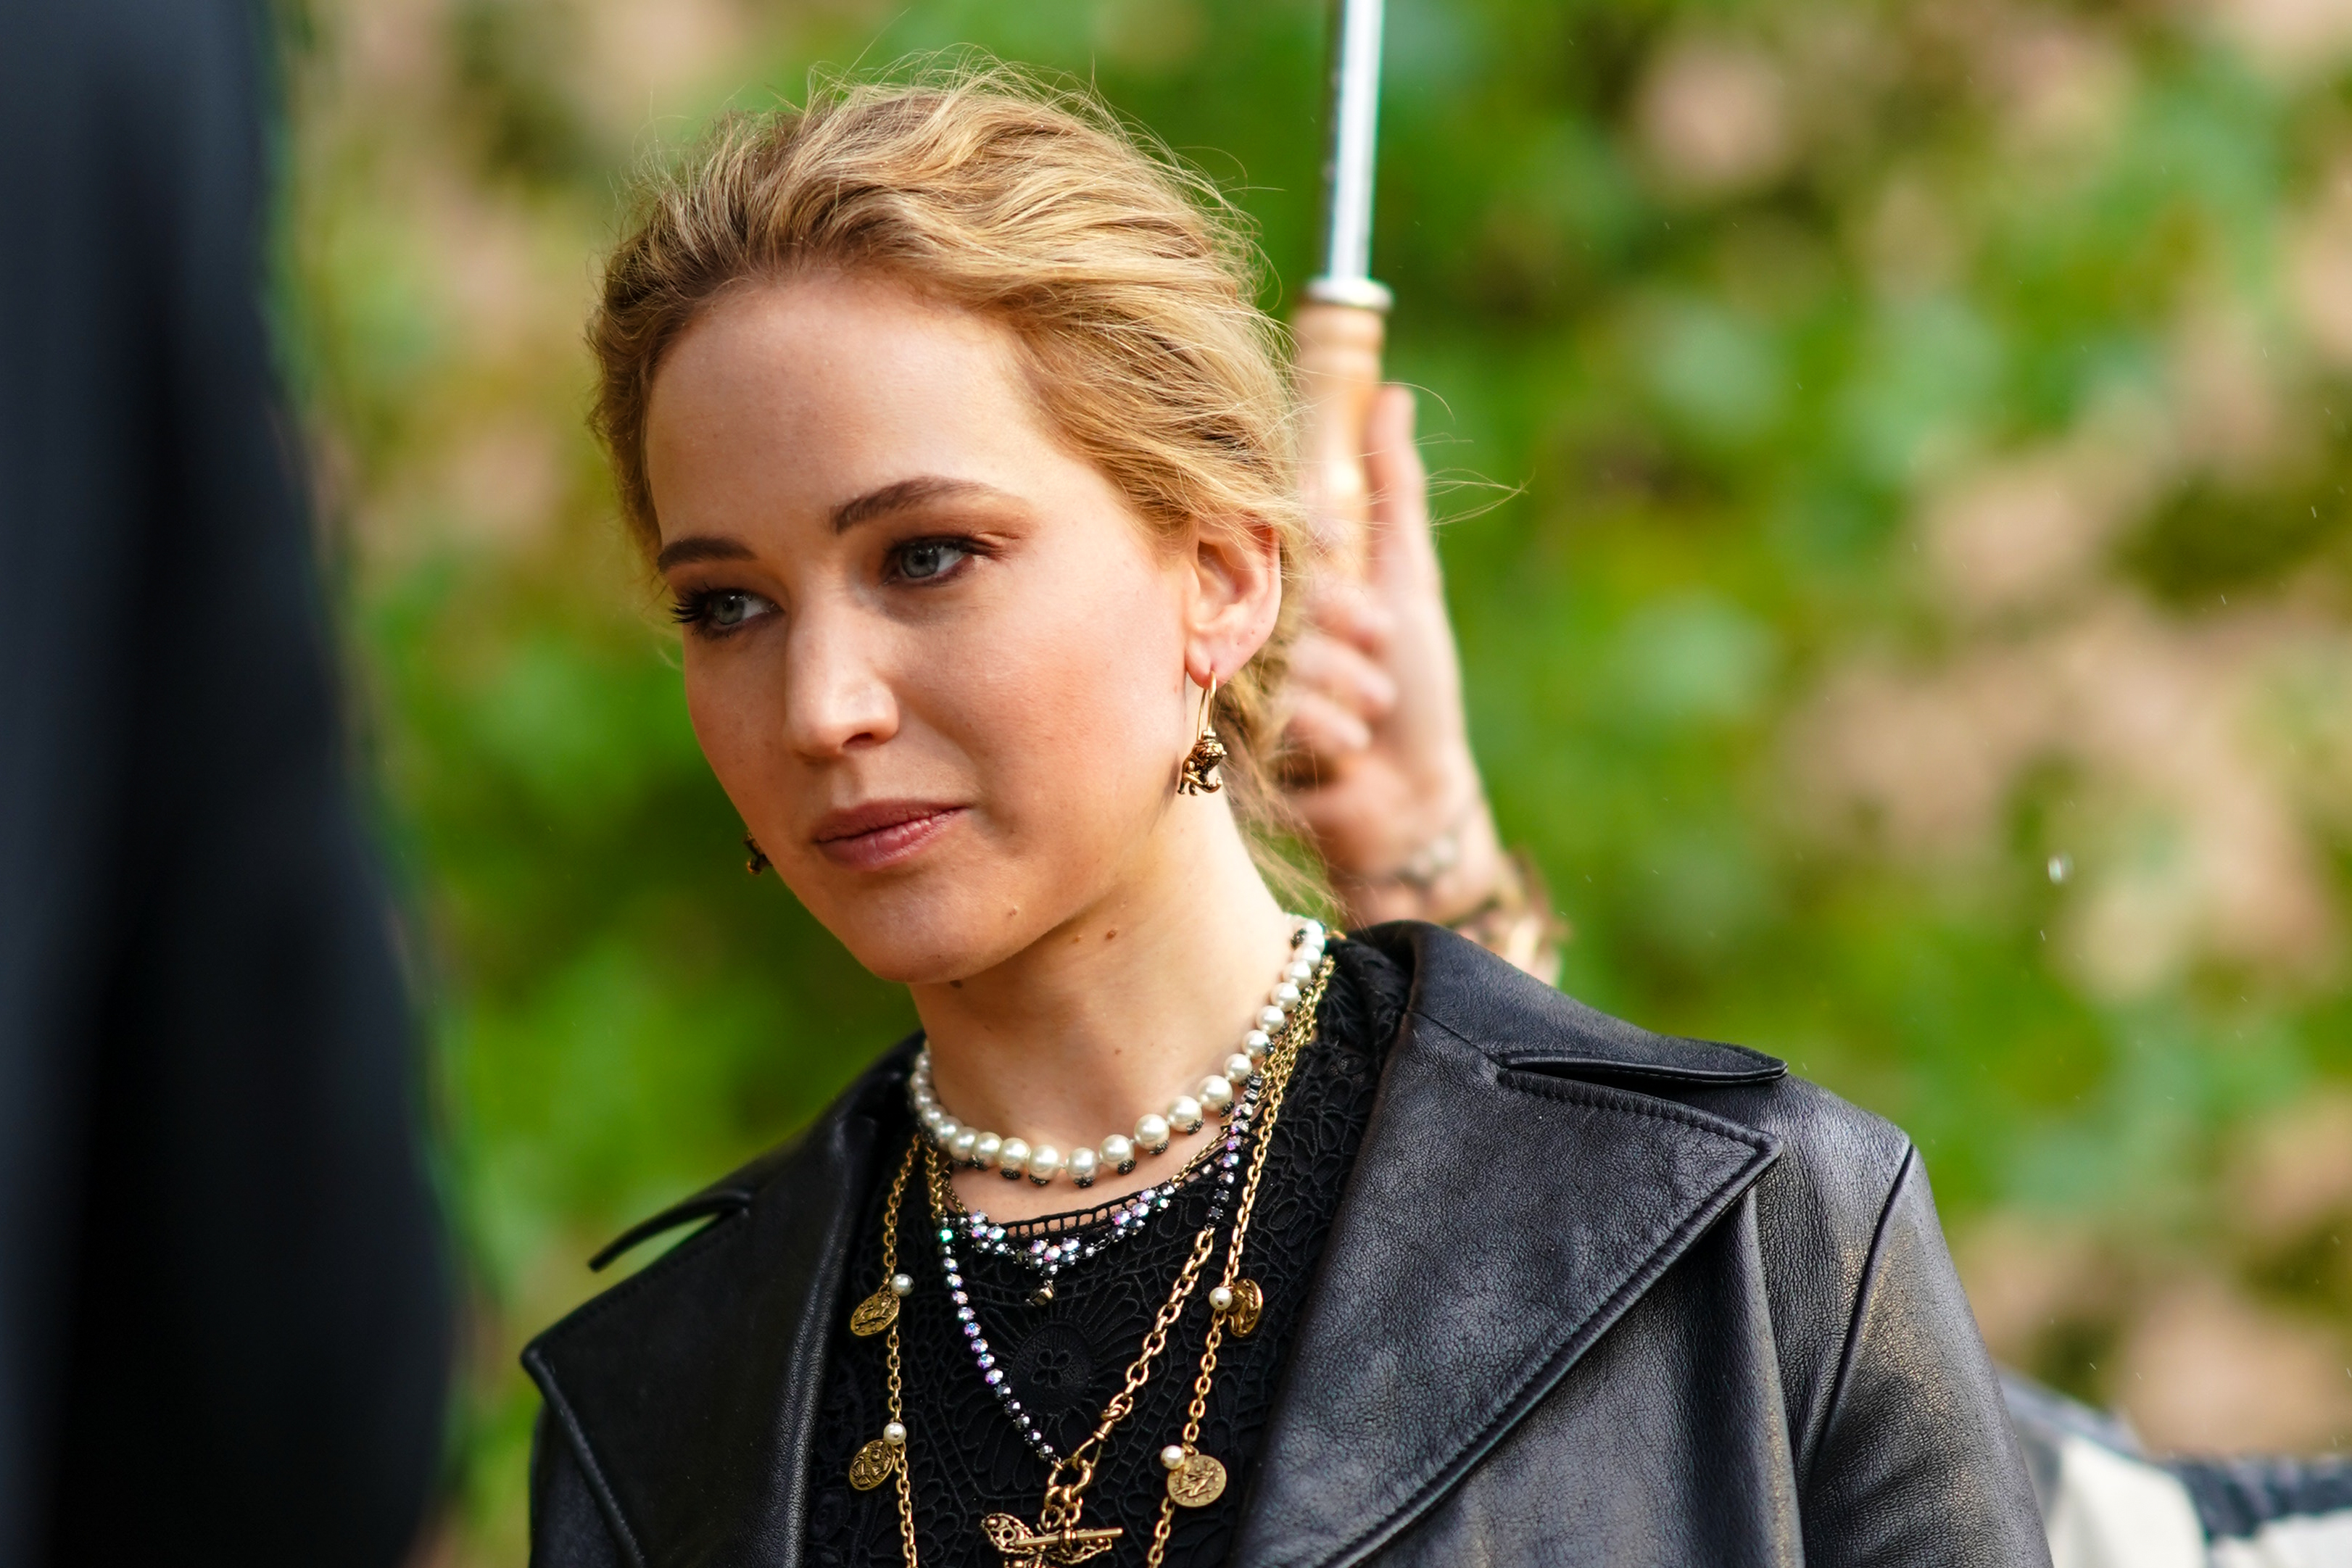 Jennifer Lawrence's family farm has been burned down (Photo by Edward Berthelot/Getty Images)